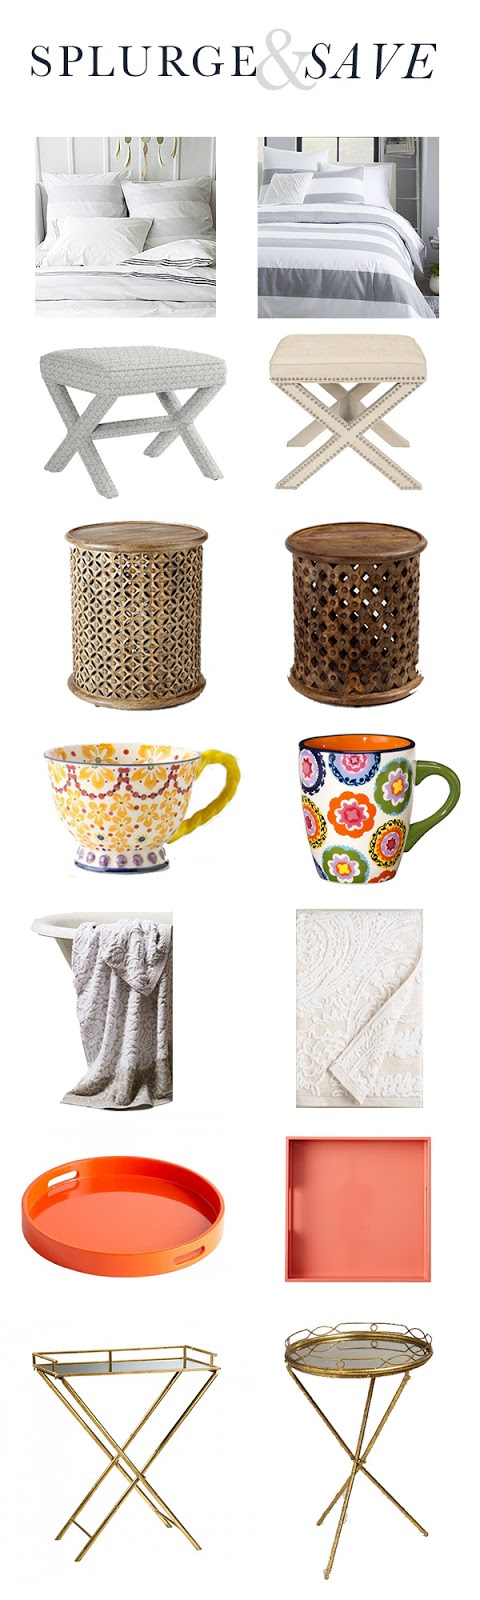 save money, splurge, bedding, duvet cover, X bench, nailhead trim, side table, wood table, tea cup, gold, tray